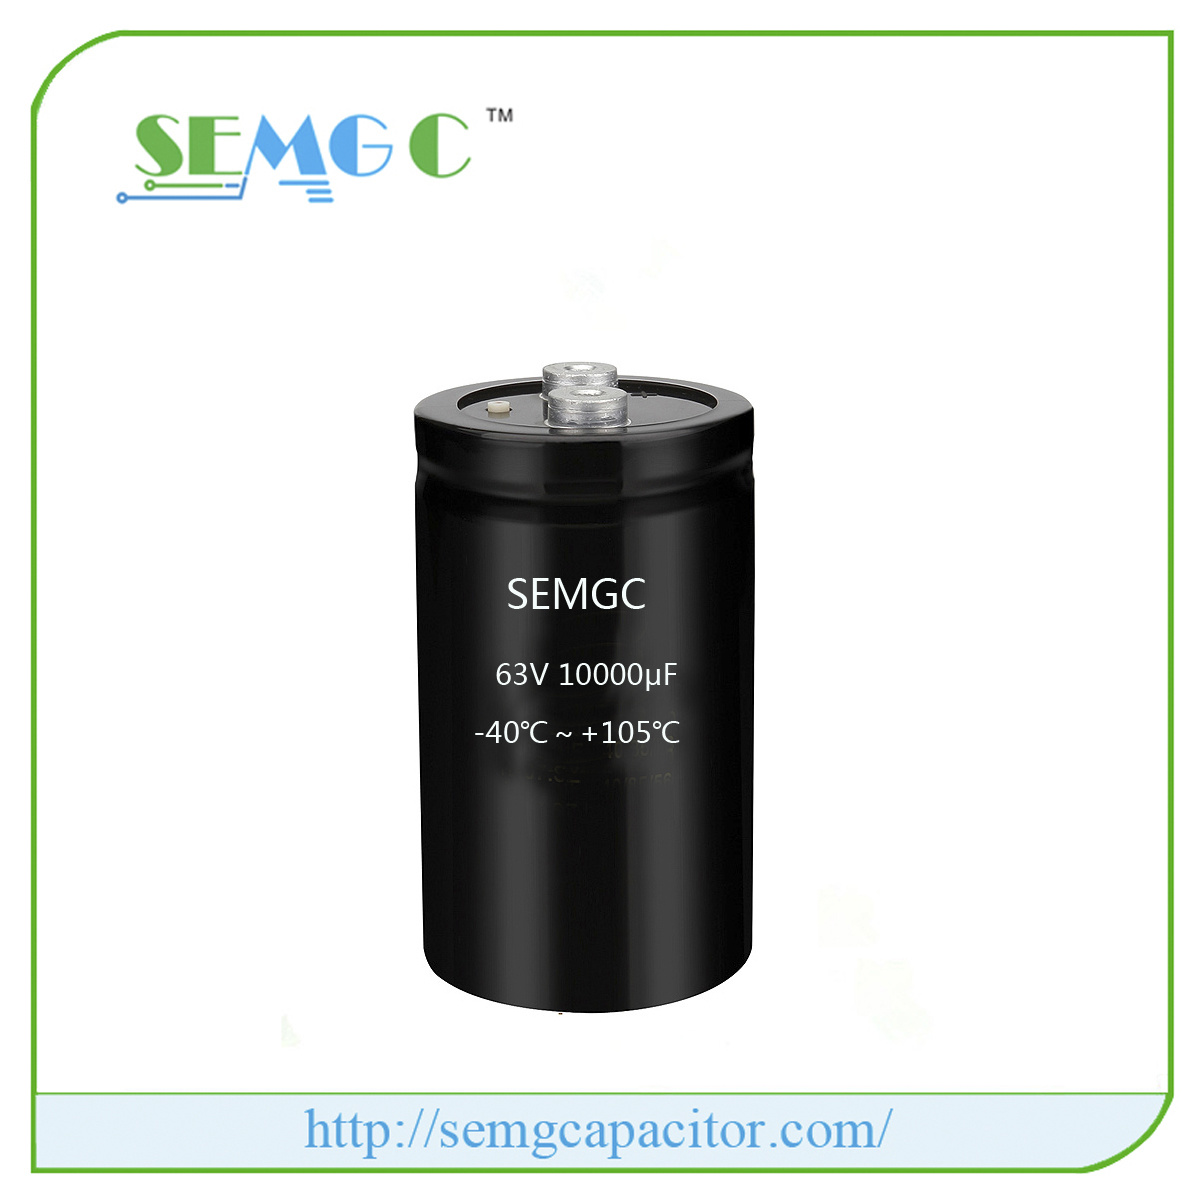 China 63v 10000 8200 1000 220 10uf Super Capacitor Battery Power Circuit With Capacitors And A Bank